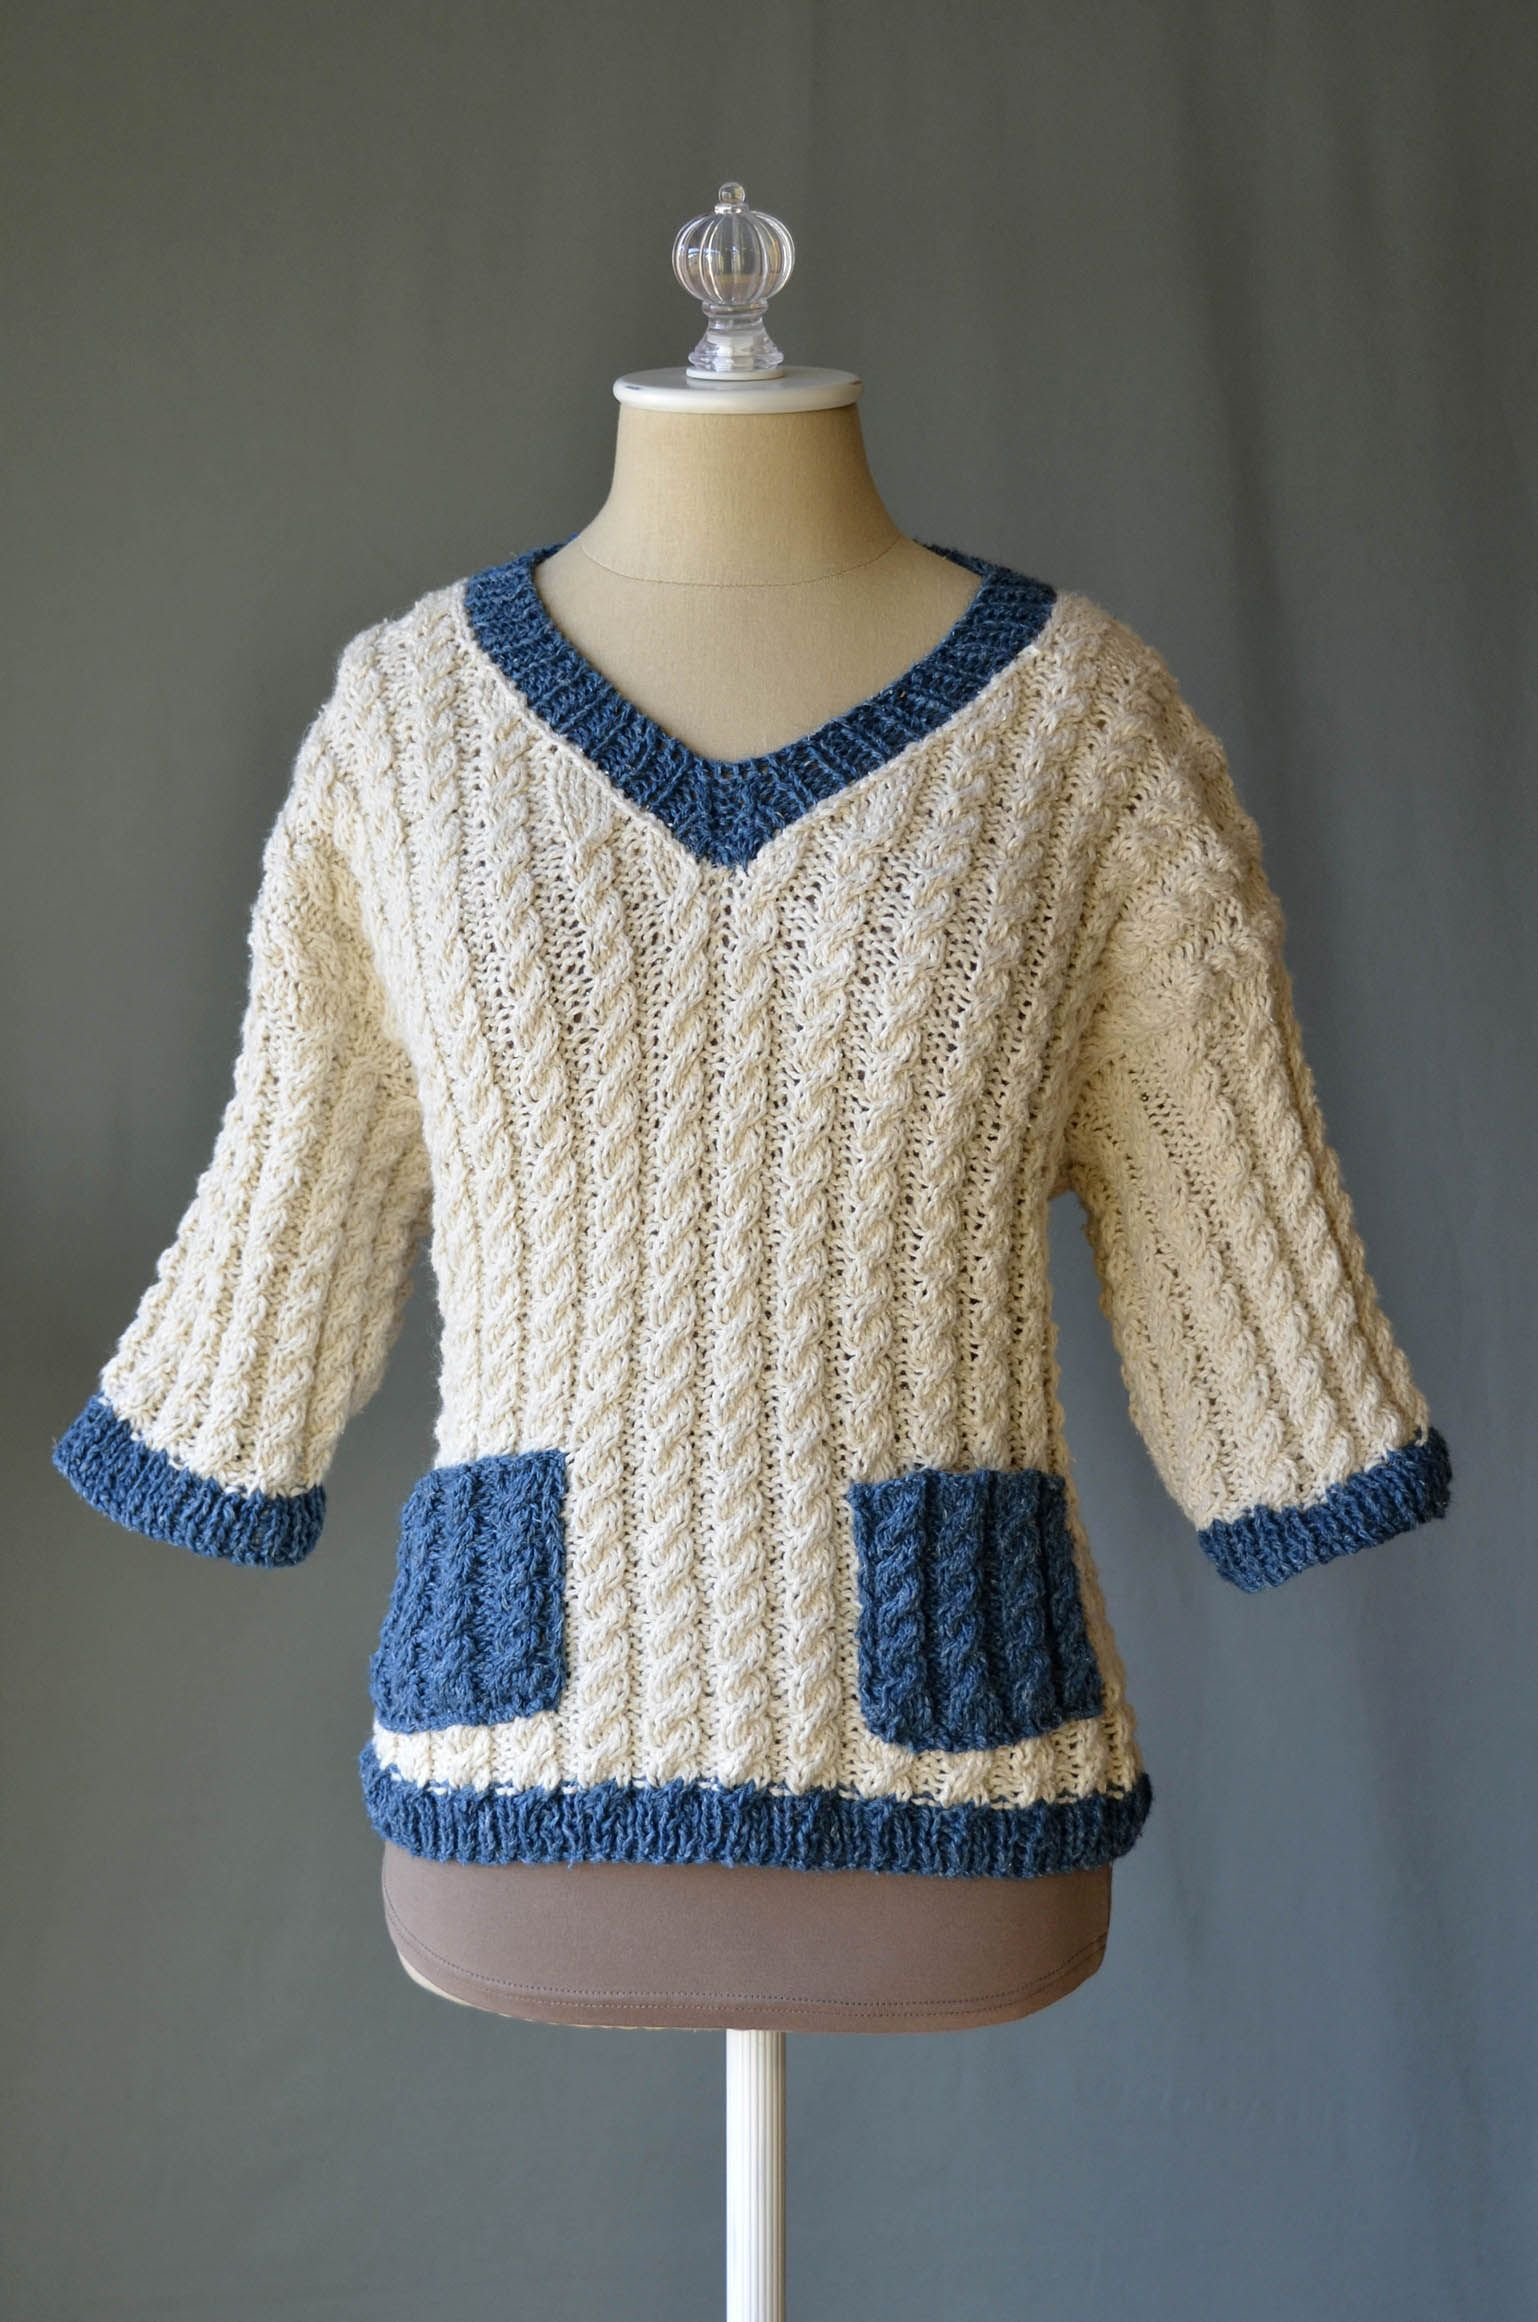 Free Knitting Pattern - the cabled Varia Pullover sweater in Fibra ...